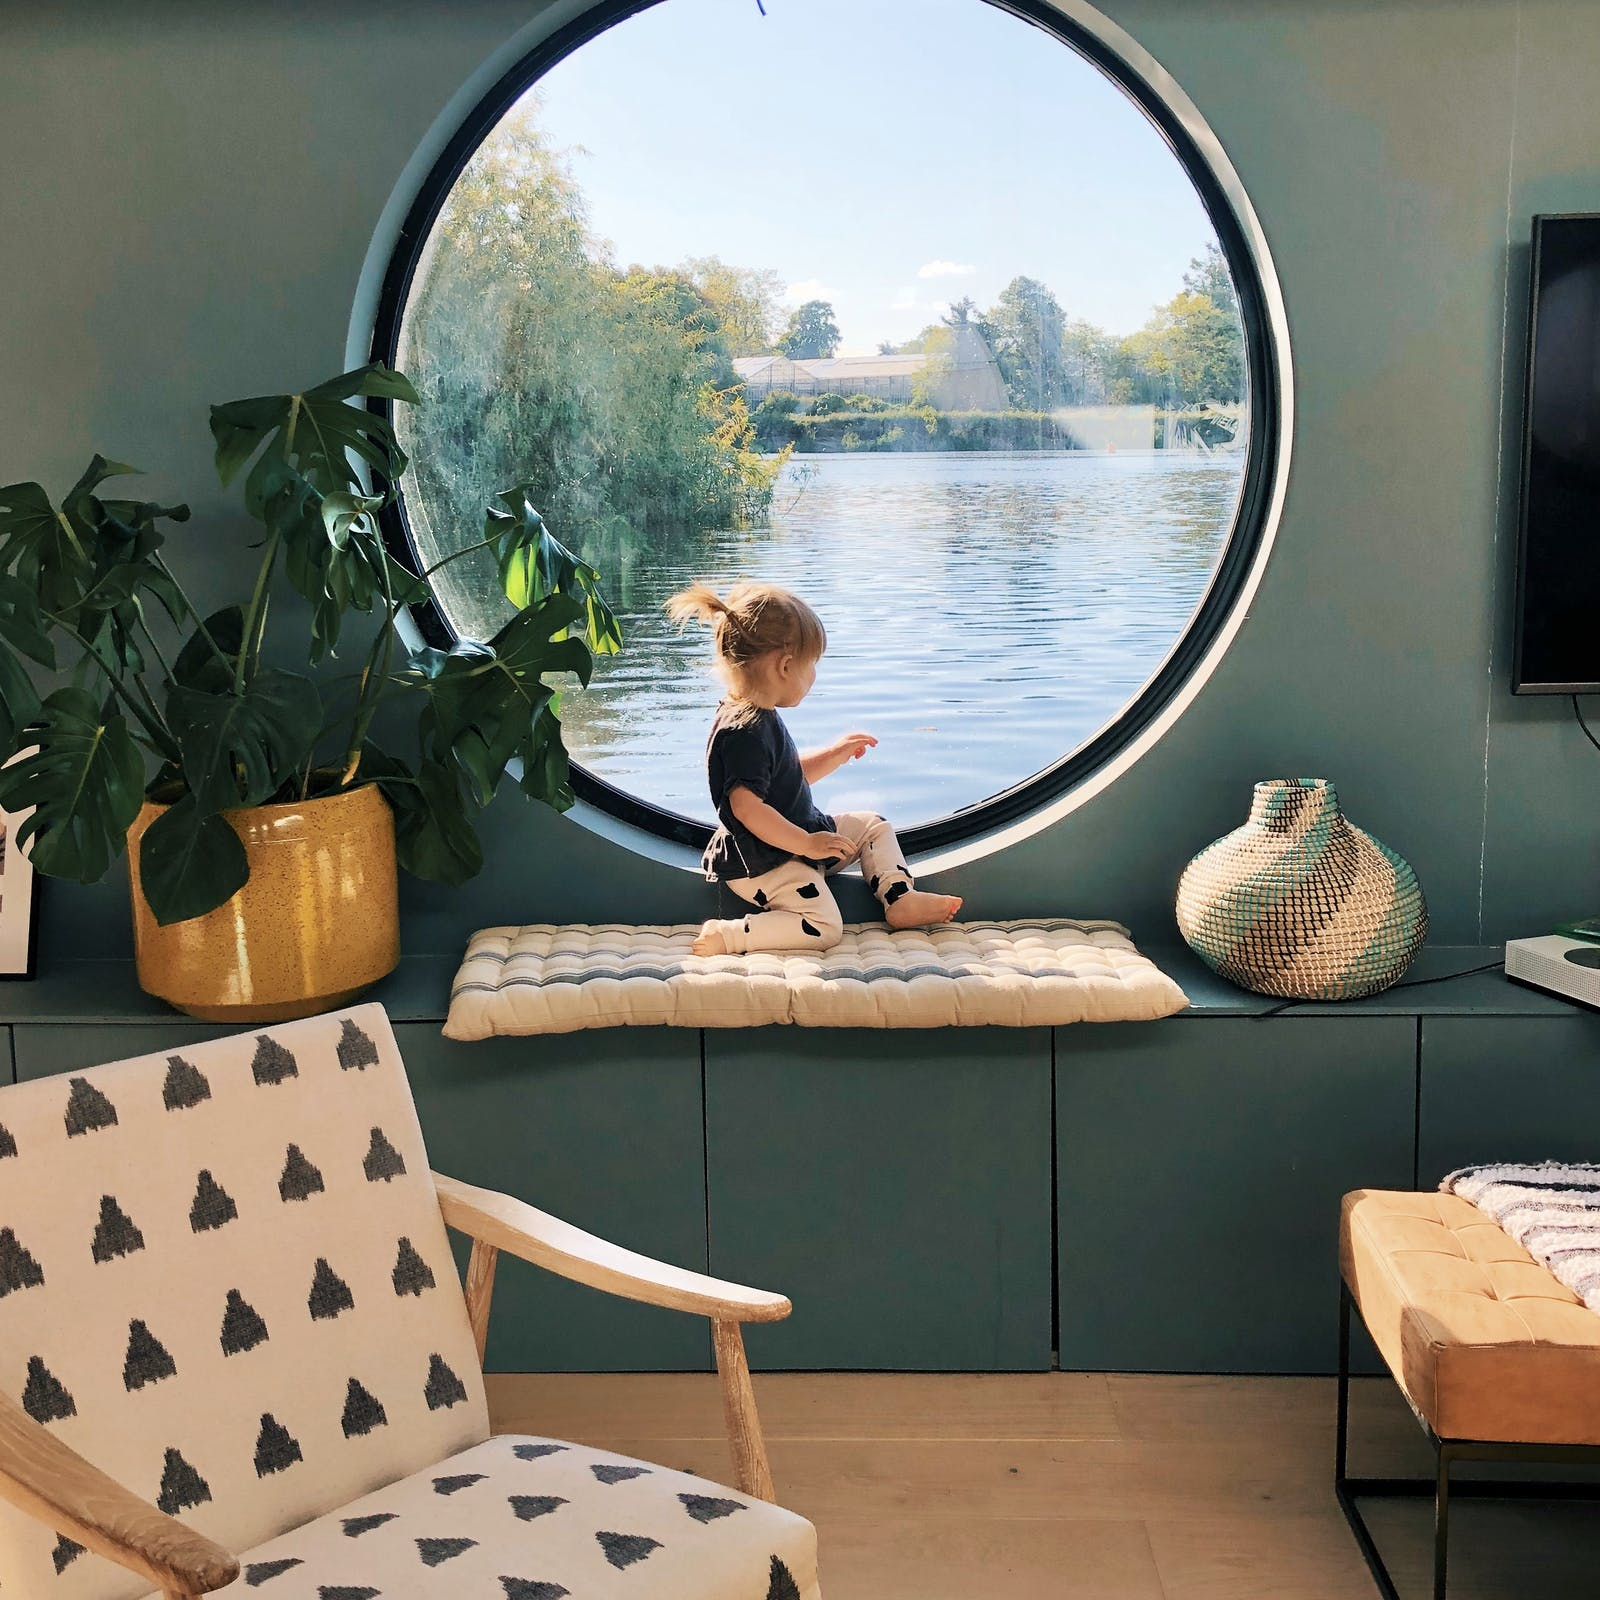 Child sitting in front of a large circular window in a teal painted living room